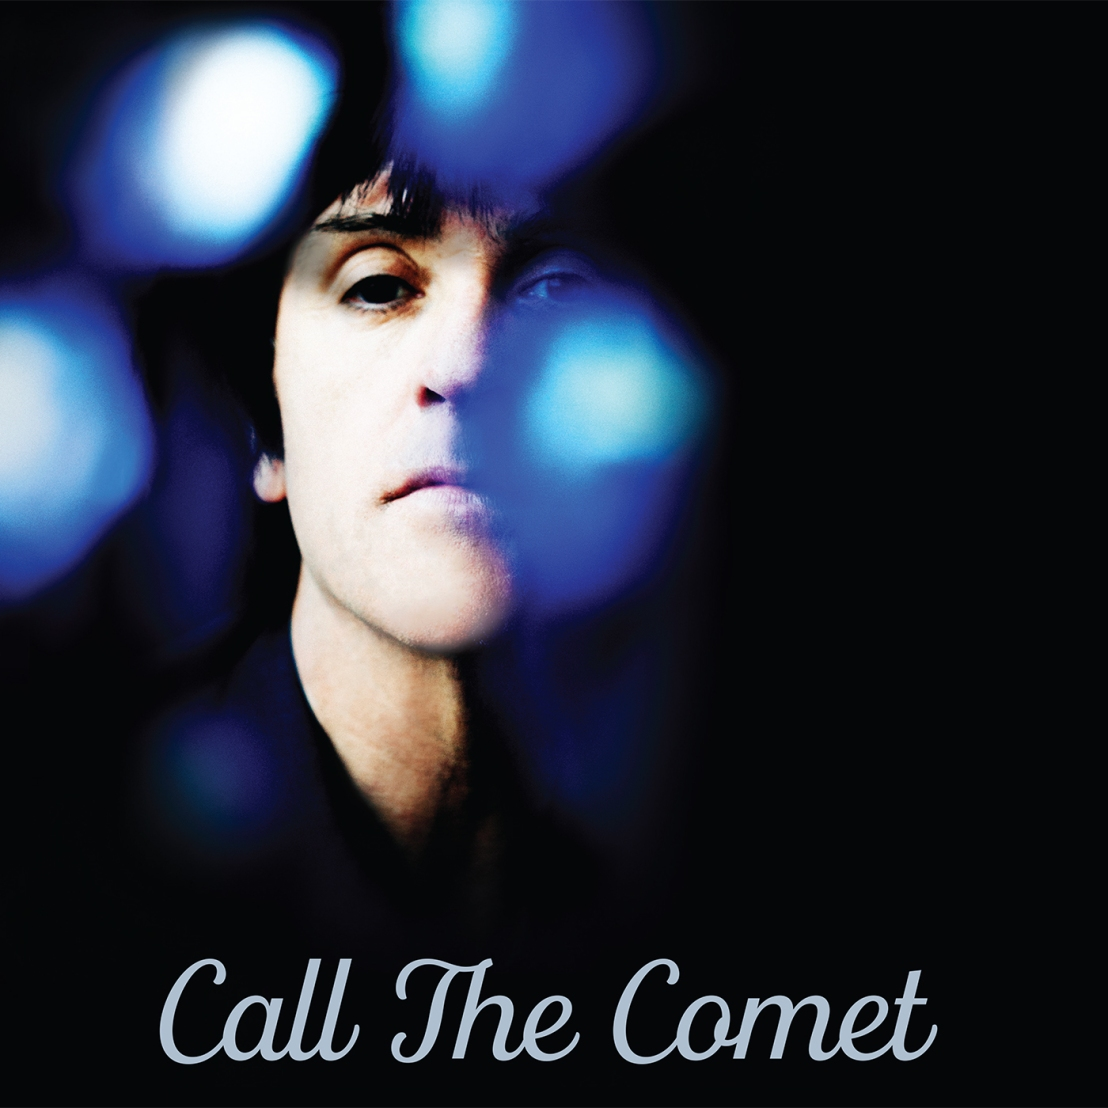 Album Review: Call The Comet by Johnny Marr gets 8/10